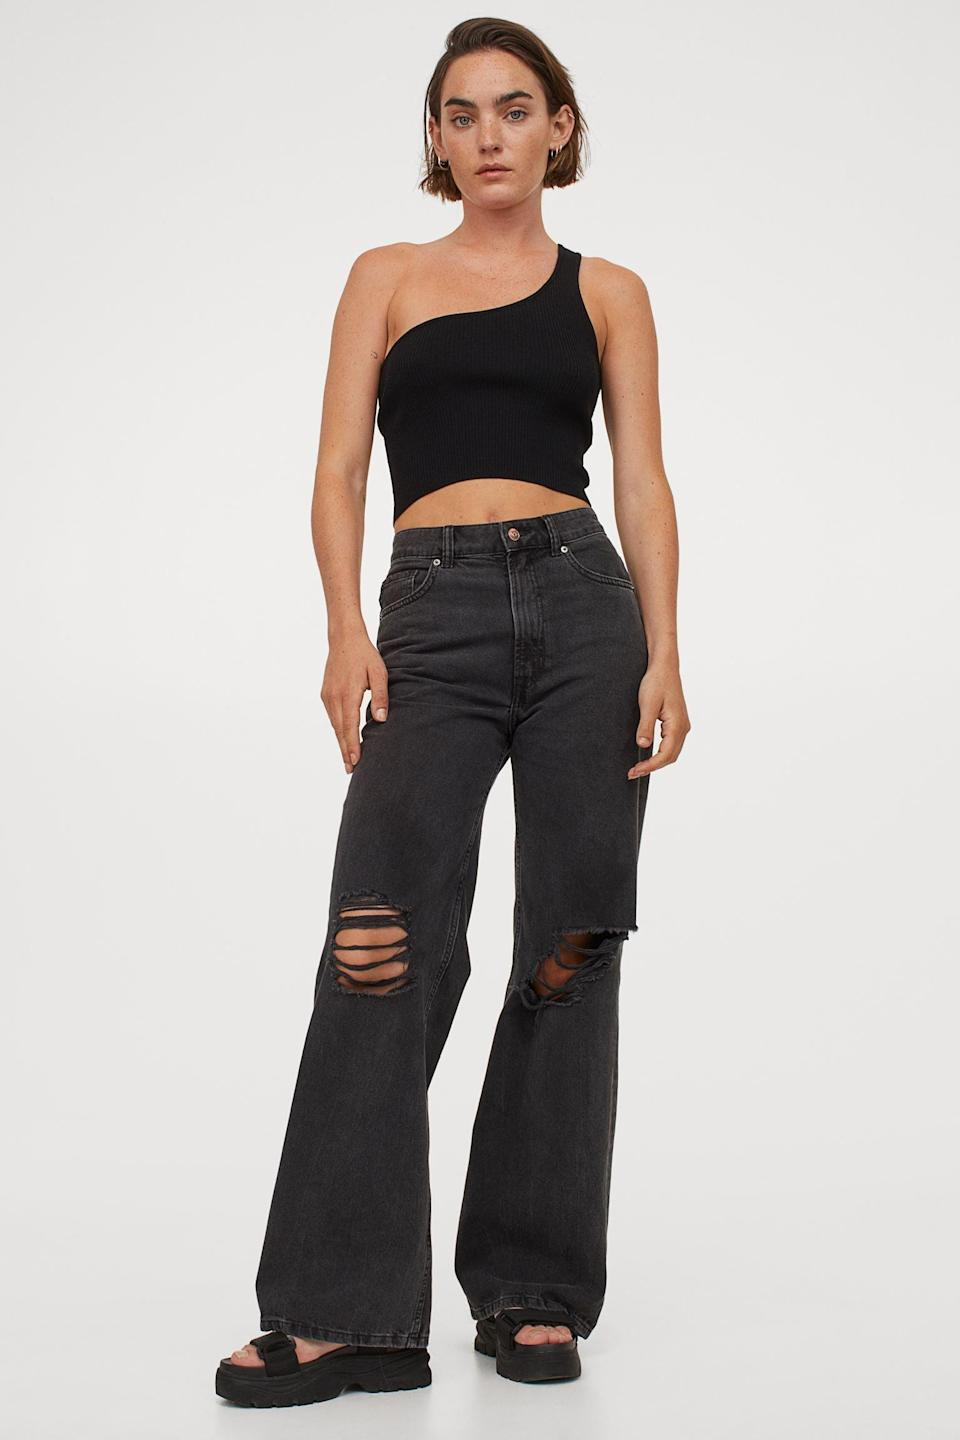 <p>We're loving the wide-leg, ripped jeans look right now. These <span>H&amp;M Wide High Jeans</span> ($35) look greta with a cropped top.</p>